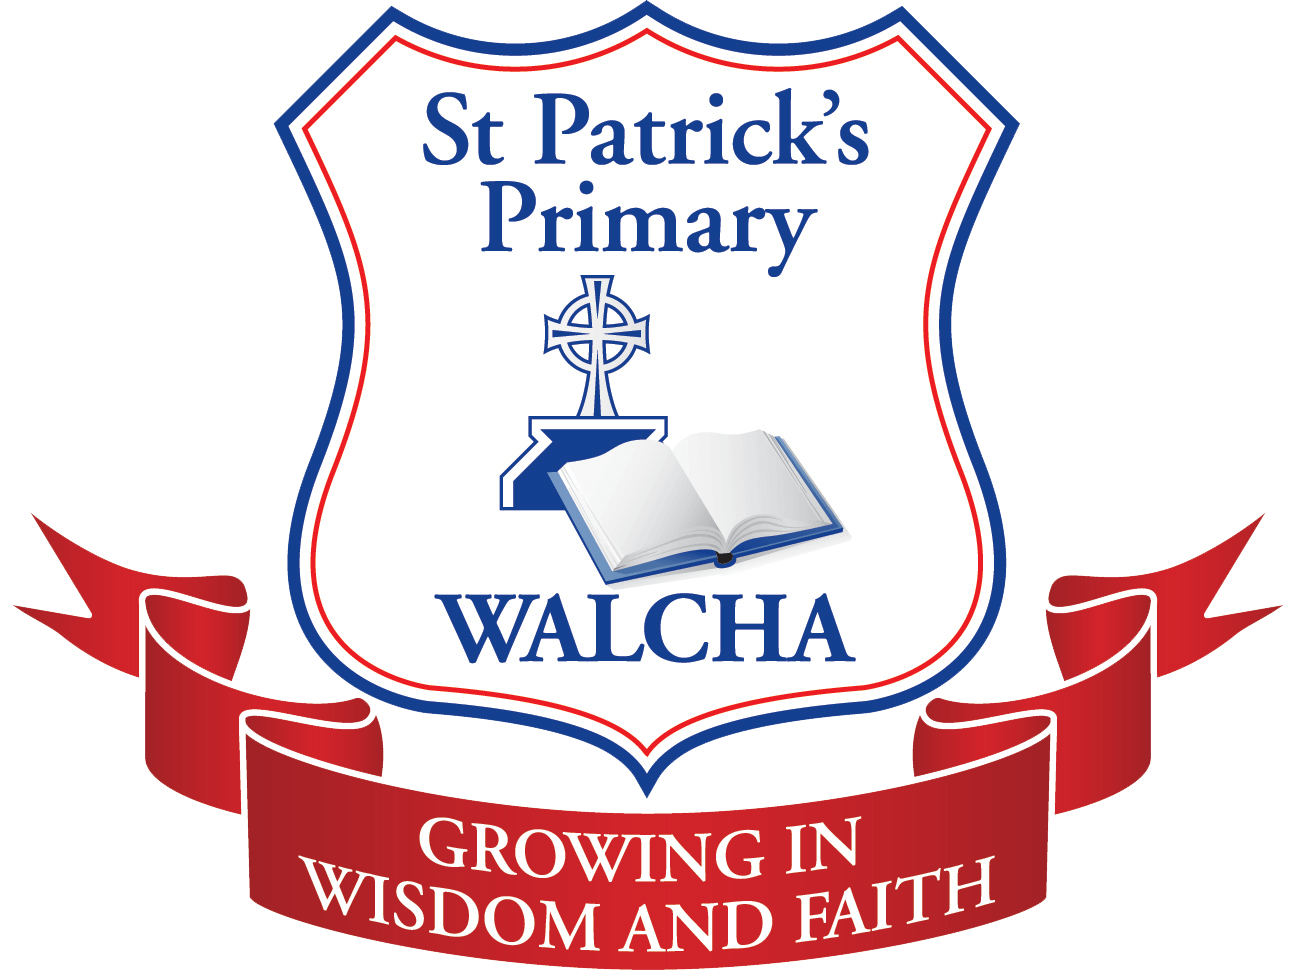 St Patrick's Primary School